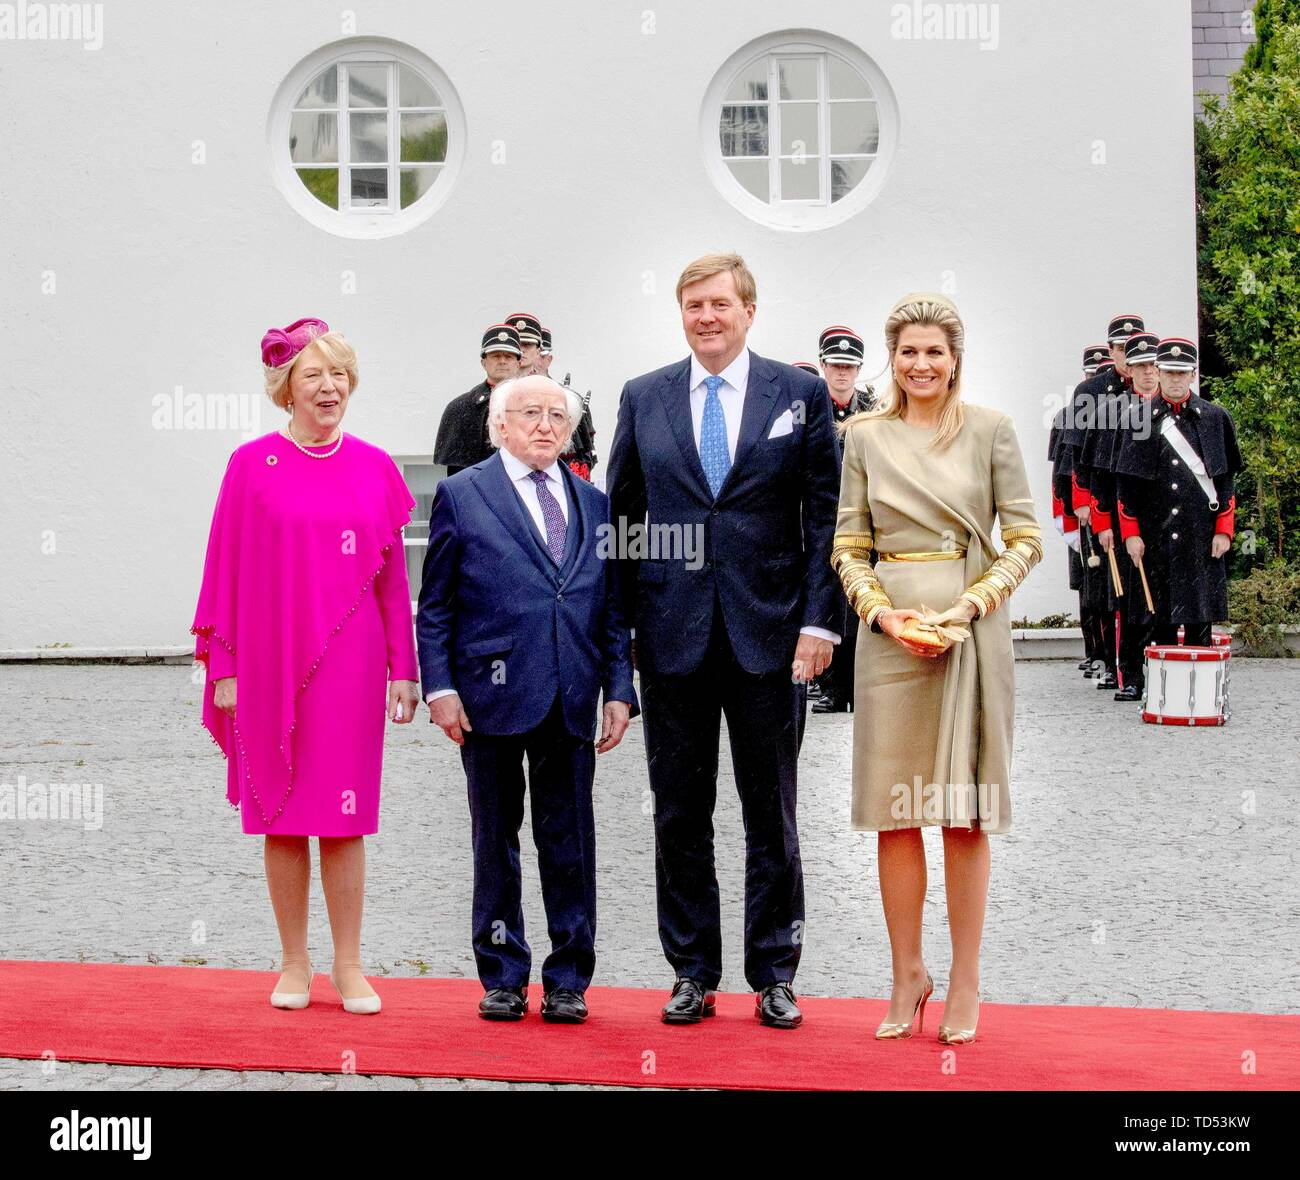 Dublin, Ireland. 12th June, 2019. King Willem-Alexander and Queen Maxima of The Netherlands received by President Higgins and his wife Sabina Higgins at A?ras an Uachtara?in, the Presidential Palace in Dublin, on June 12, 2019, at the 1st of a 3 days State-visit to Ireland Photo : Albert Nieboer/ Netherlands OUT/Point de Vue OUT | Credit: dpa/Alamy Live News - Stock Image